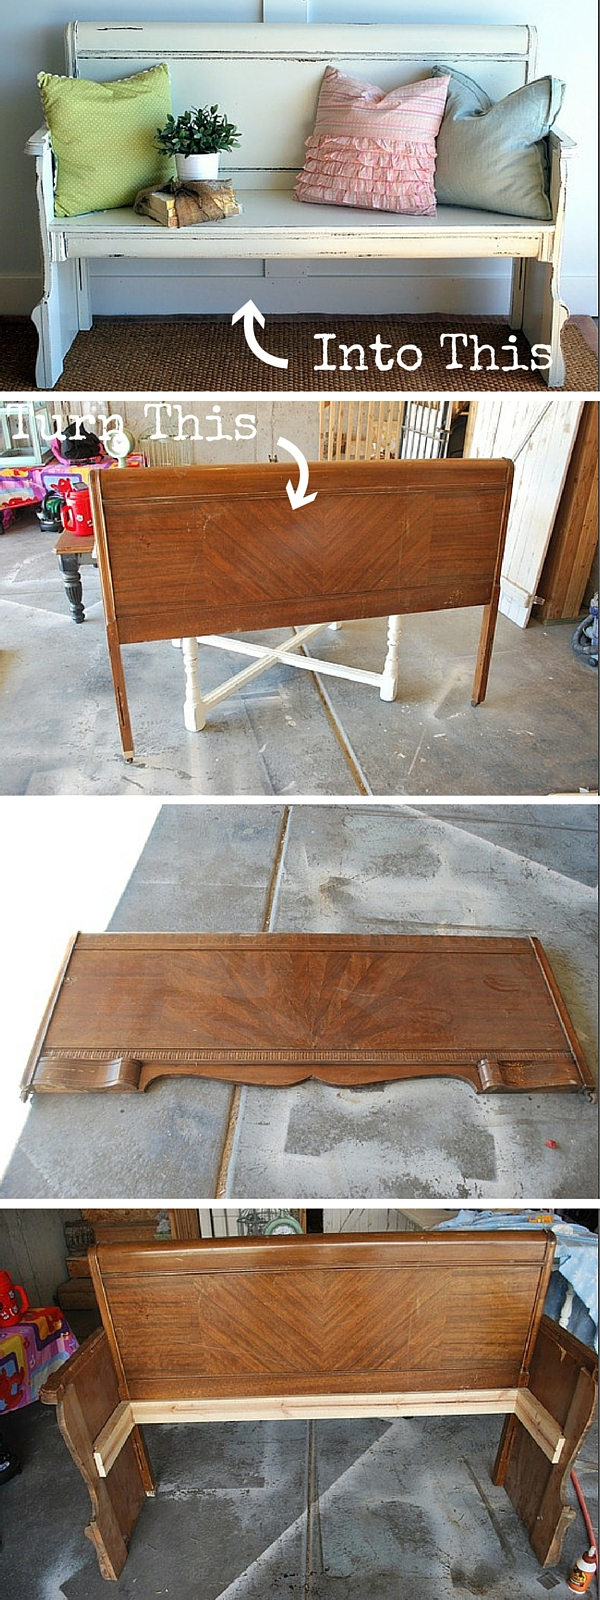 upcycled furniture upcycling reuse DIY The handy mano manomano headboard bench